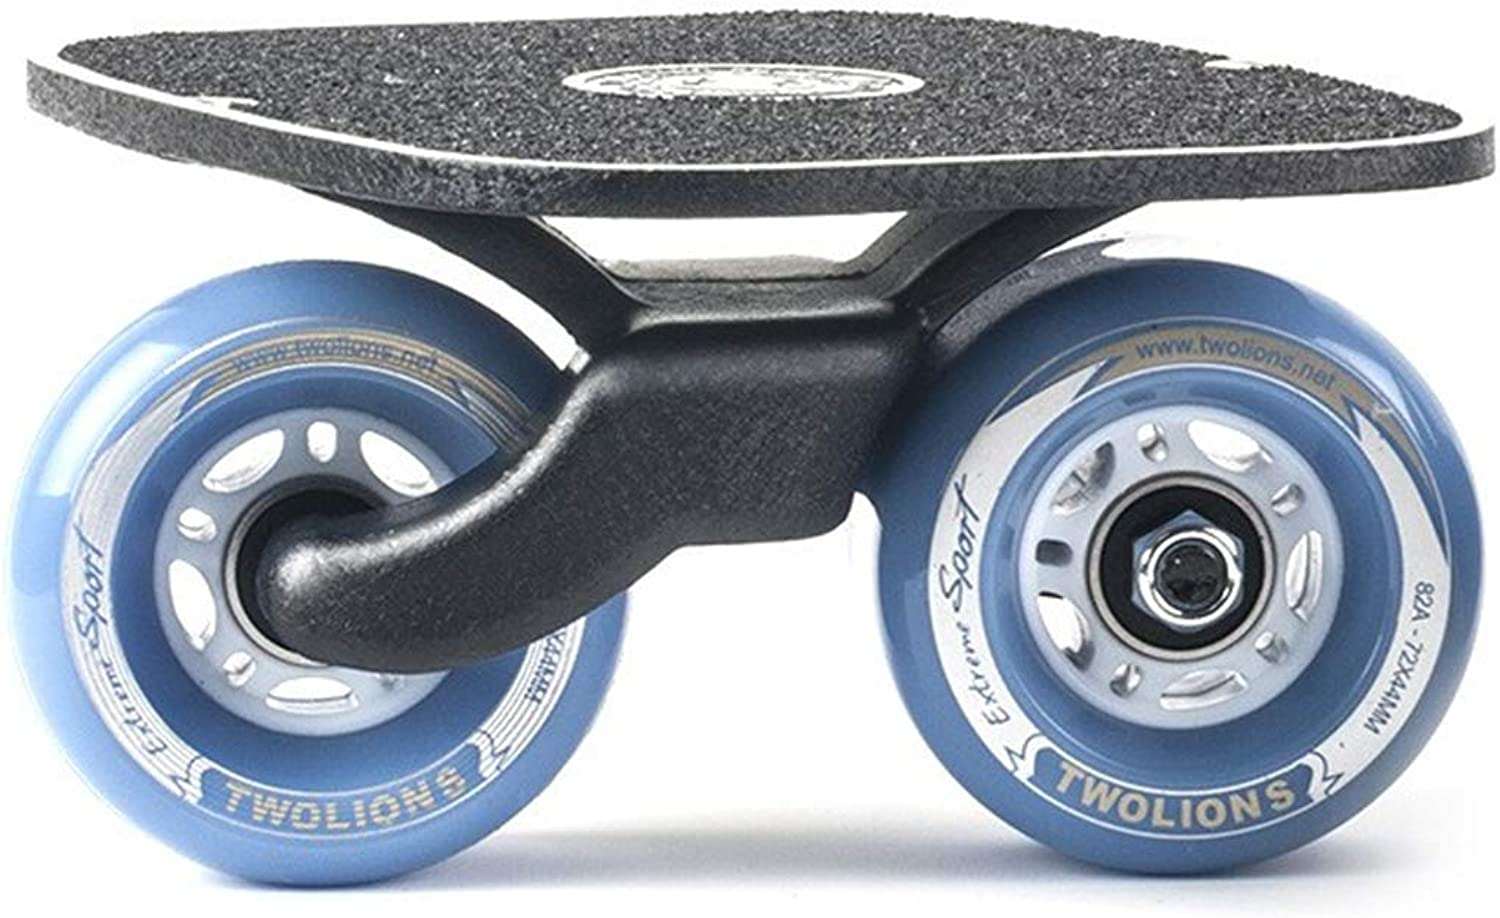 Fish Pattern Series, Drift Skating lace Alloy Bracket with 72 mm PU Wheel, Roller Skating with ABEC-7 Bearing